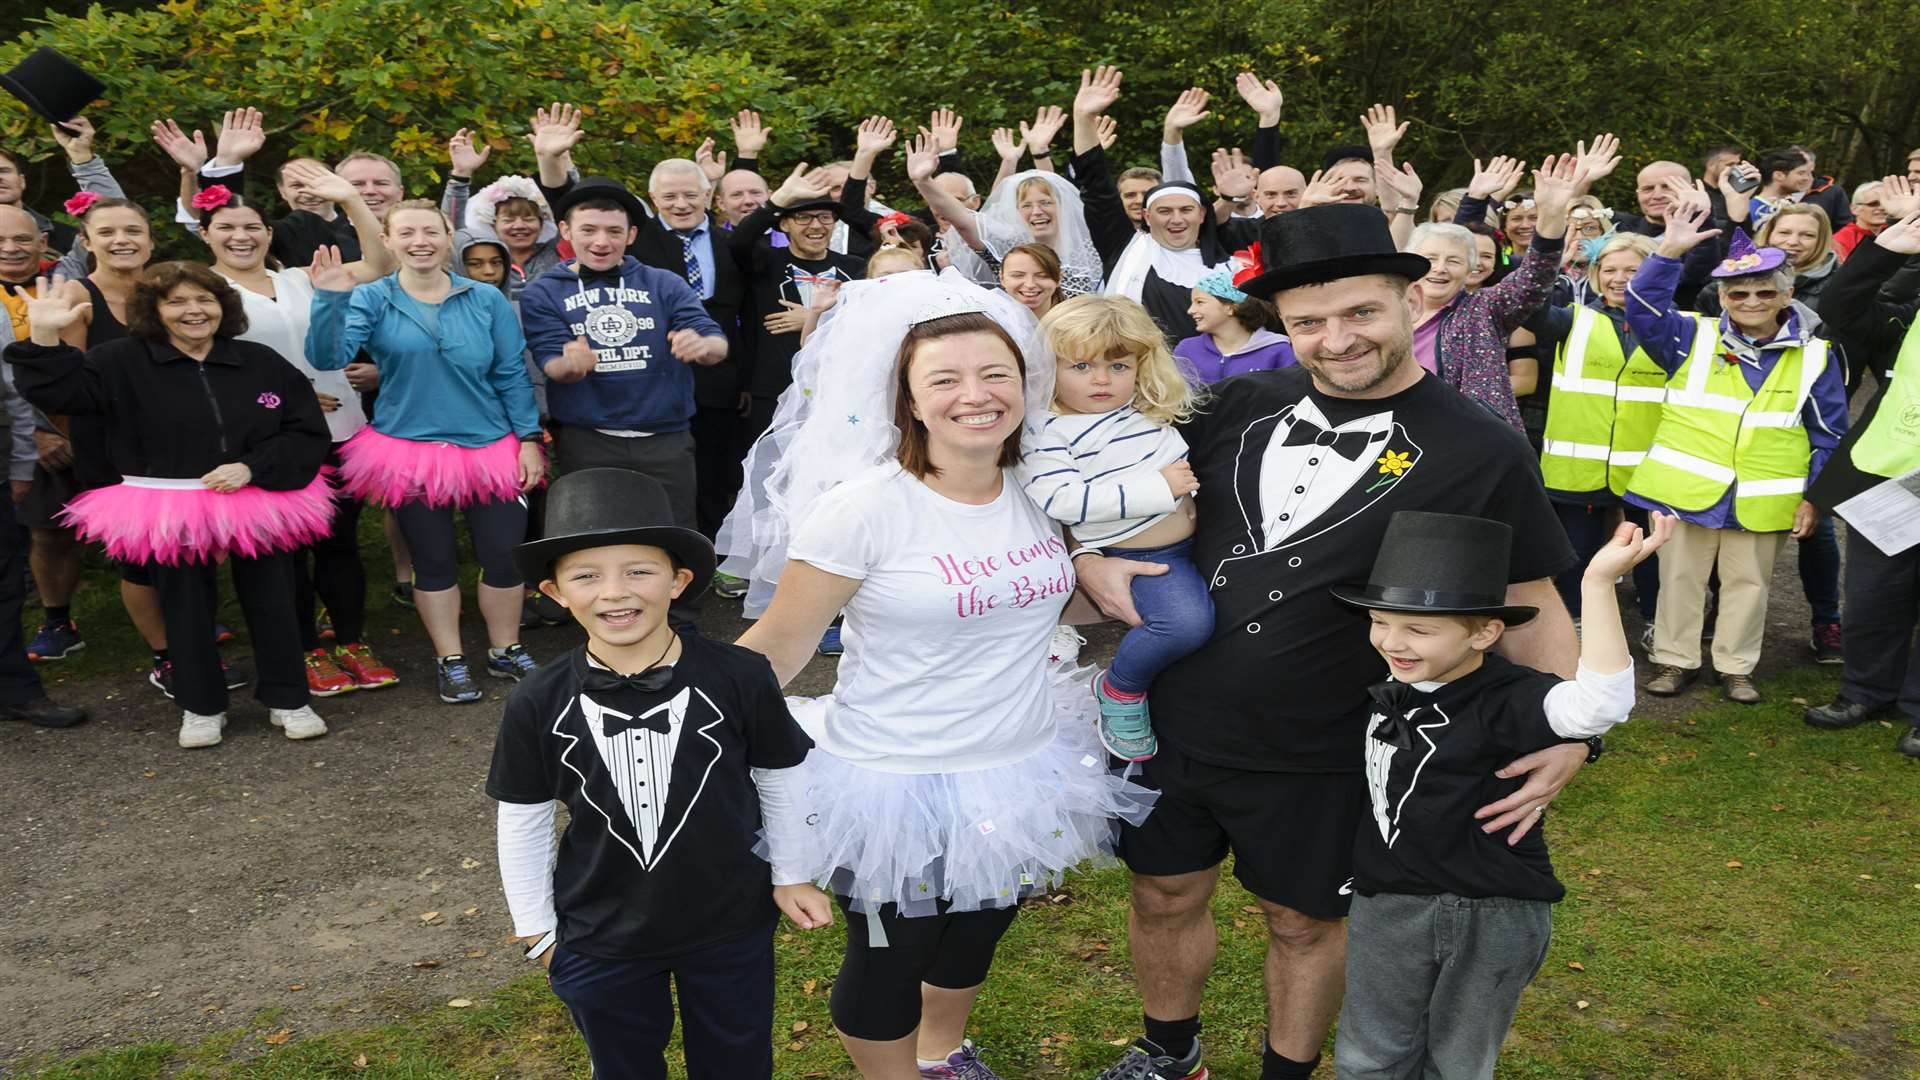 Matt and Becky with children from left, Jack Roberston, 8, Emily Baxter, 2, and Oliver Baxter, 7. Picture: Andy Payton